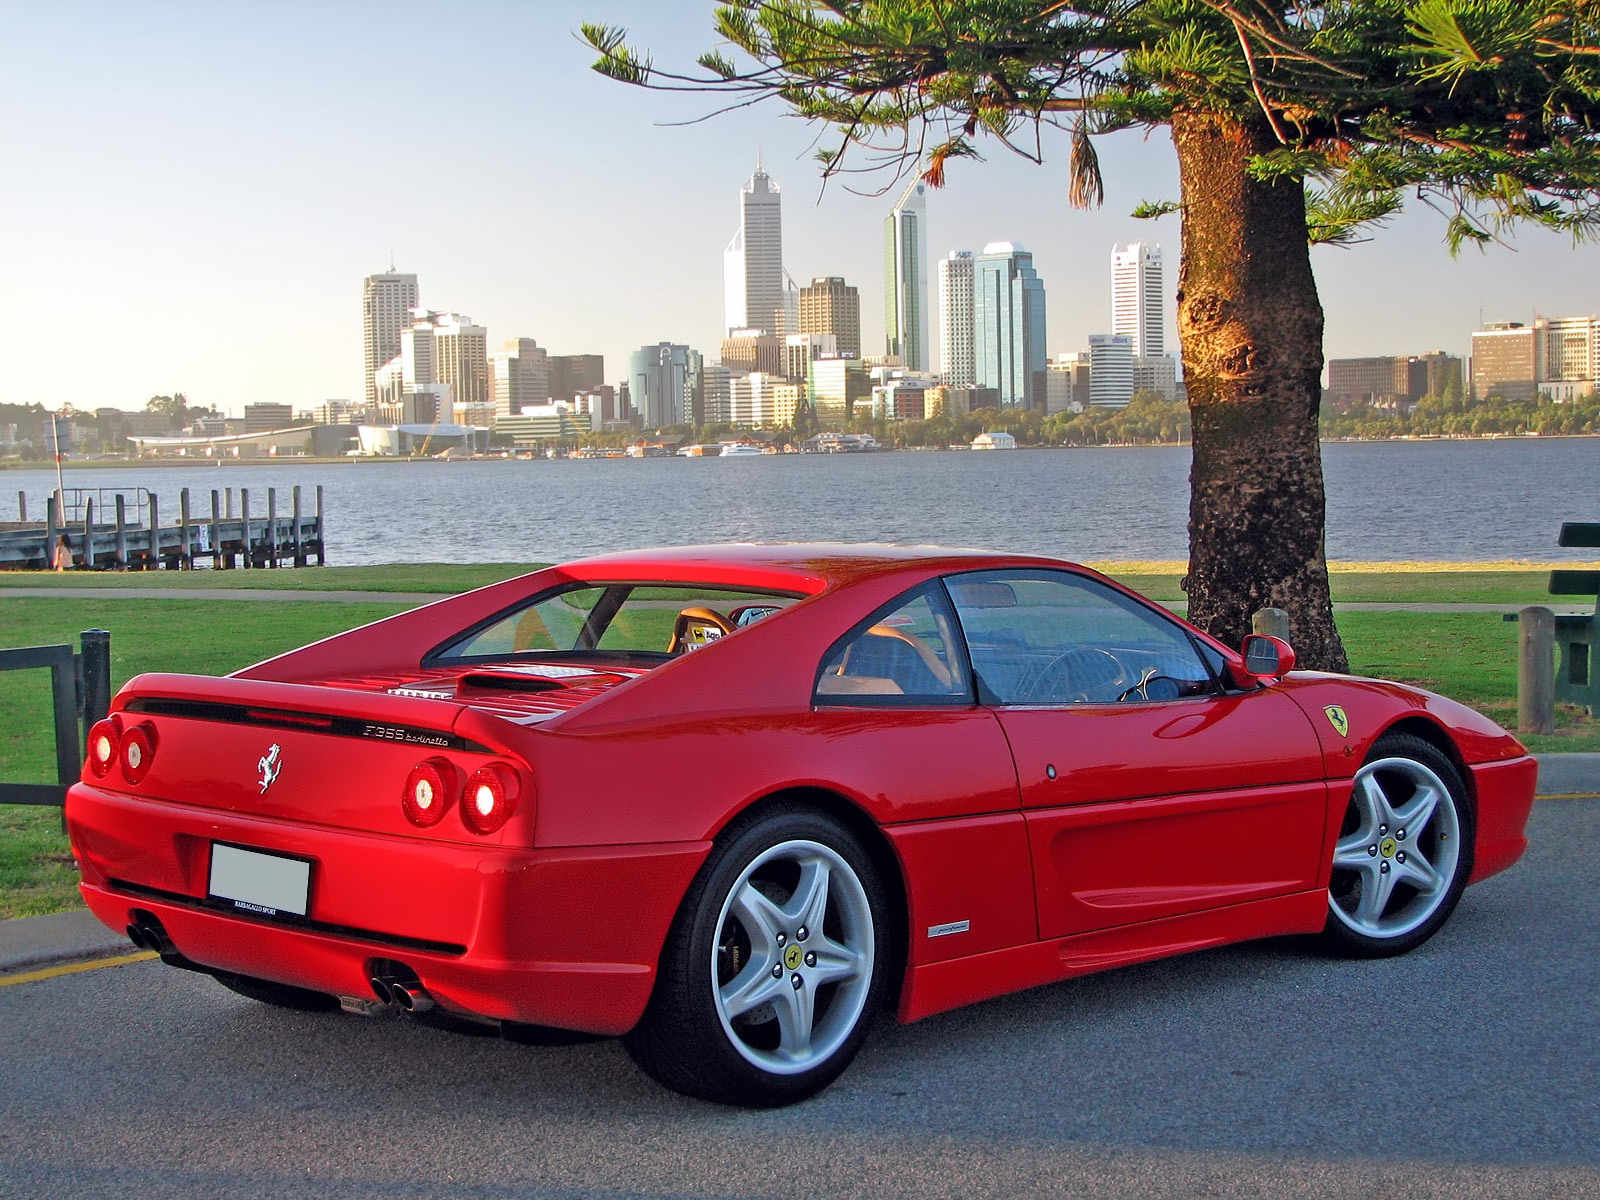 3dtuning of ferrari f355 berlinetta coupe 1994 3dtuning